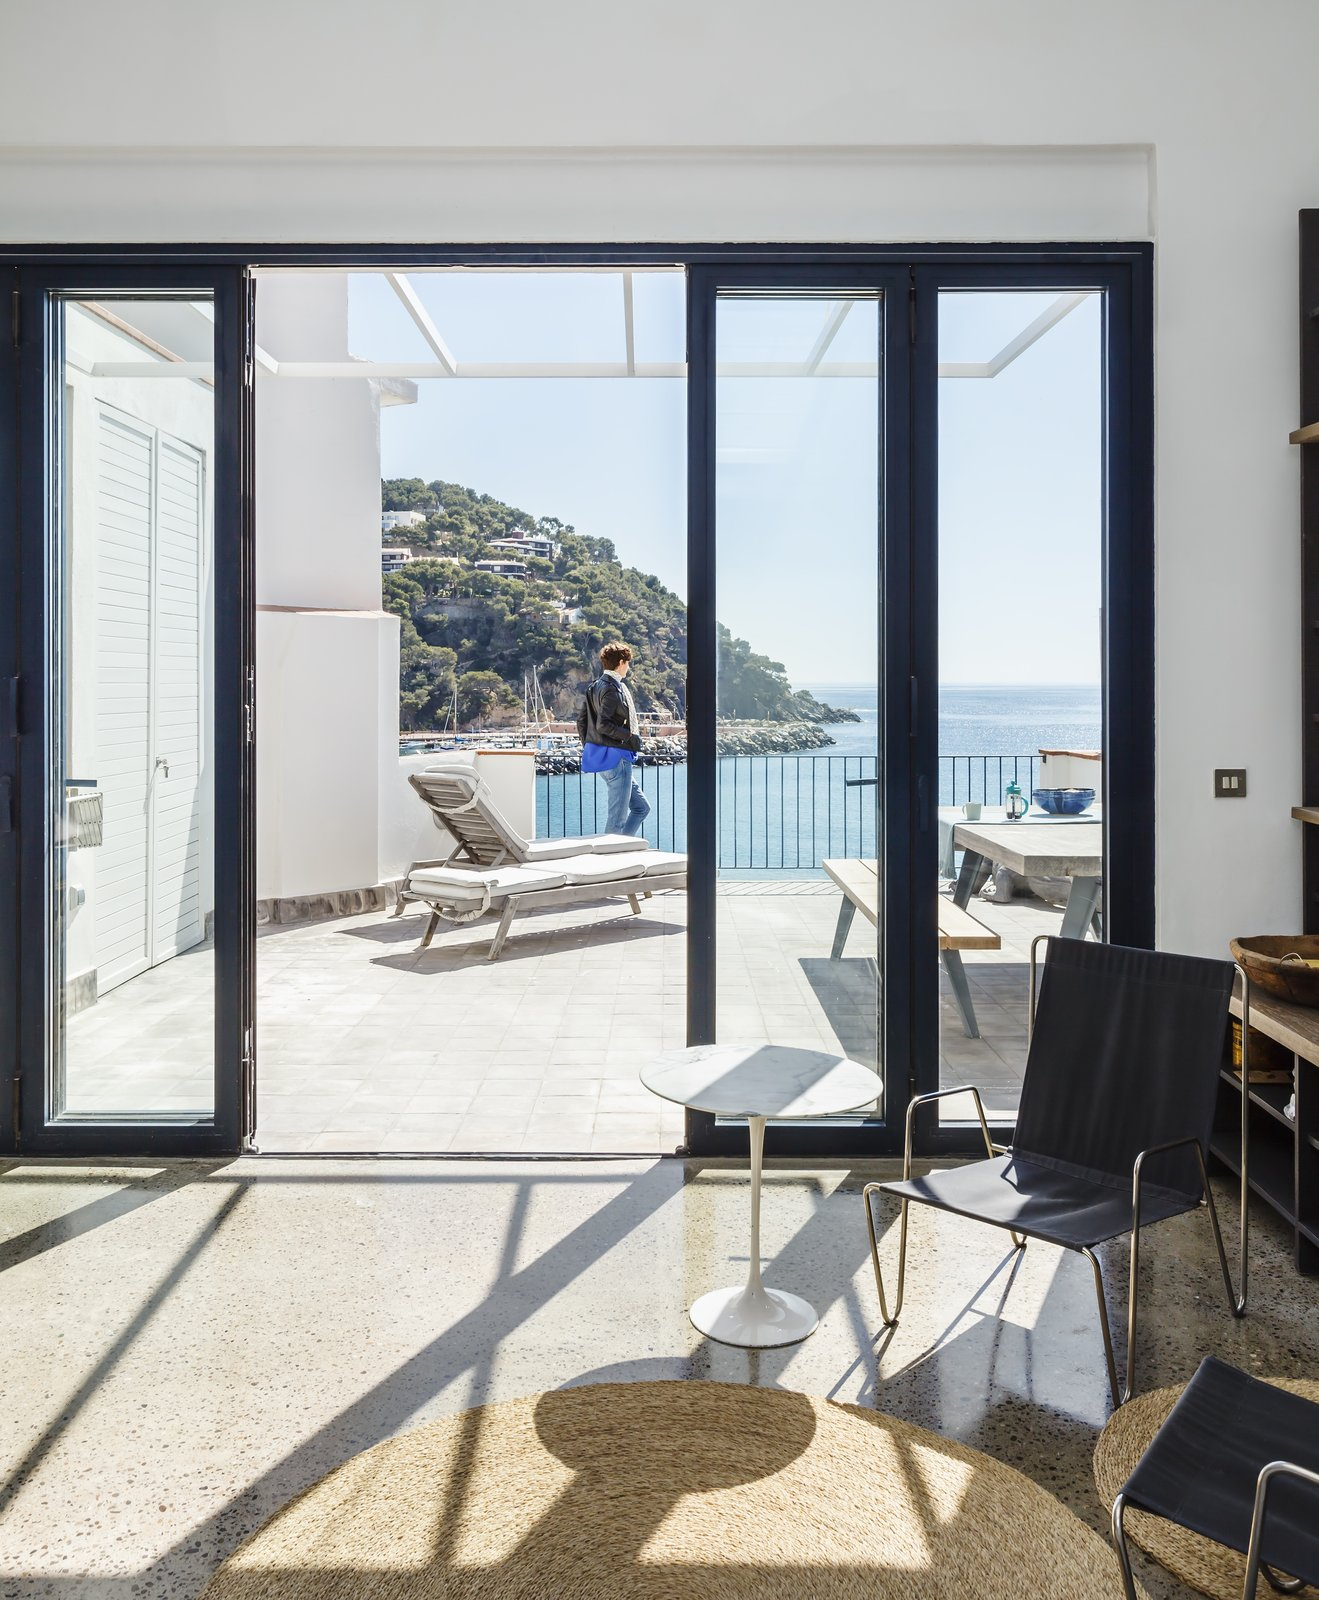 Photo 15 of 16 in A Careful Renovation Brings New Life to a Family's Heritage Home on the Spanish Coast